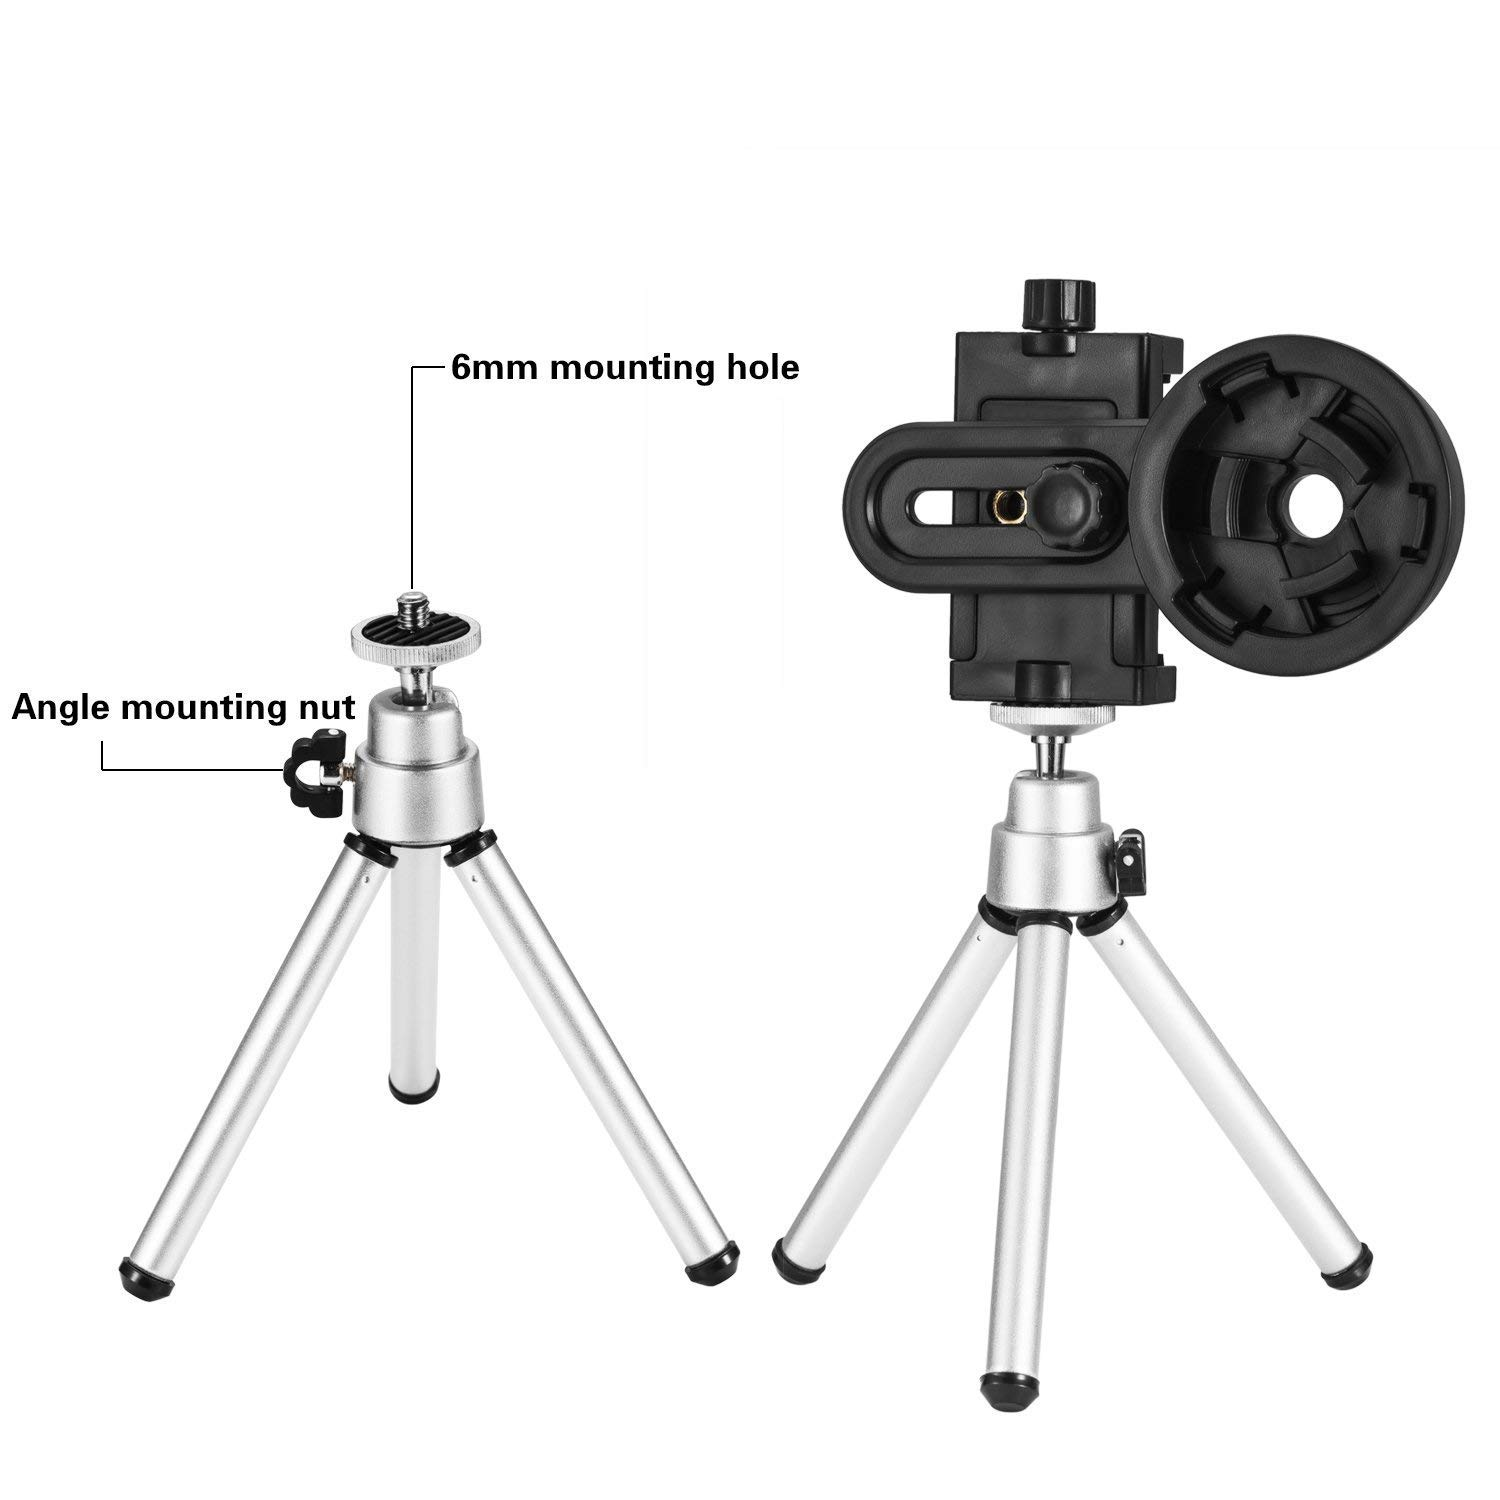 Microscopes /& Image Capturer Support Eyepiece Diameter 26 to 46mm Occer Universal Telescope Smartphone Adapter with Tripod Mount,Cell Phone Adapter Compatible with Monocular,Binoculars,Spotting Scopes